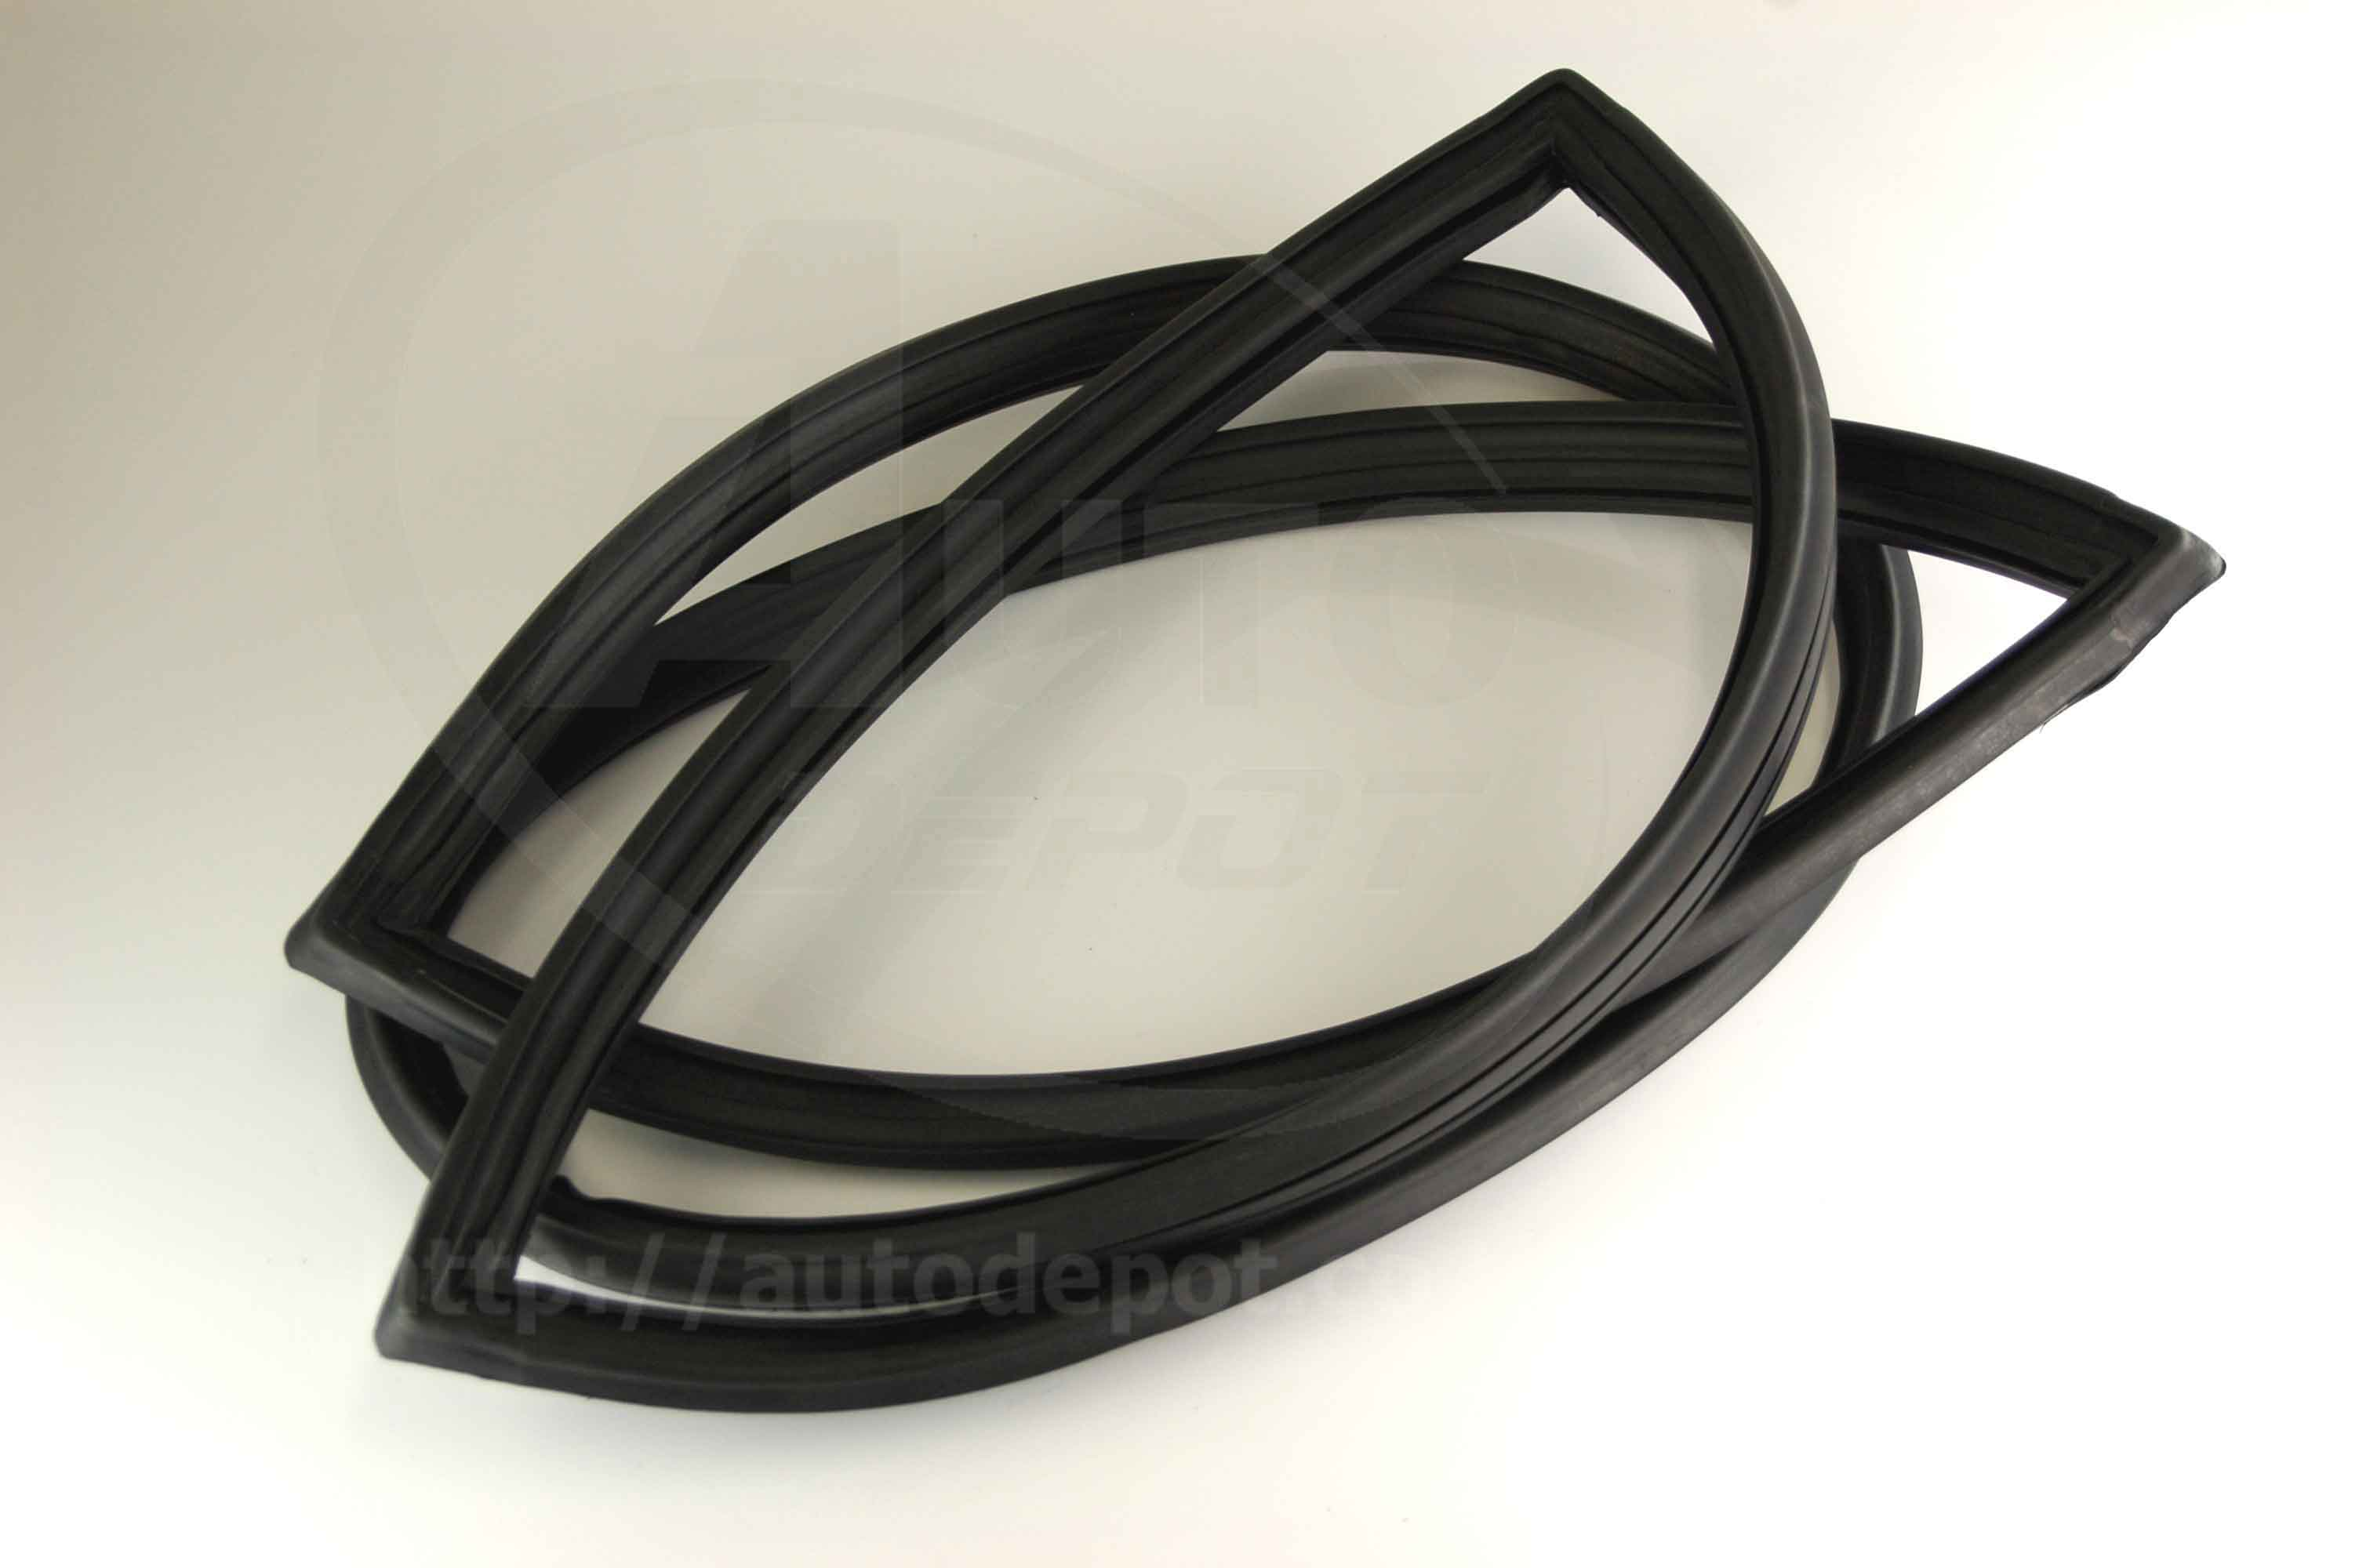 Datsun B510 Front windshield rubber auto body aftermarket spare parts and car accessories